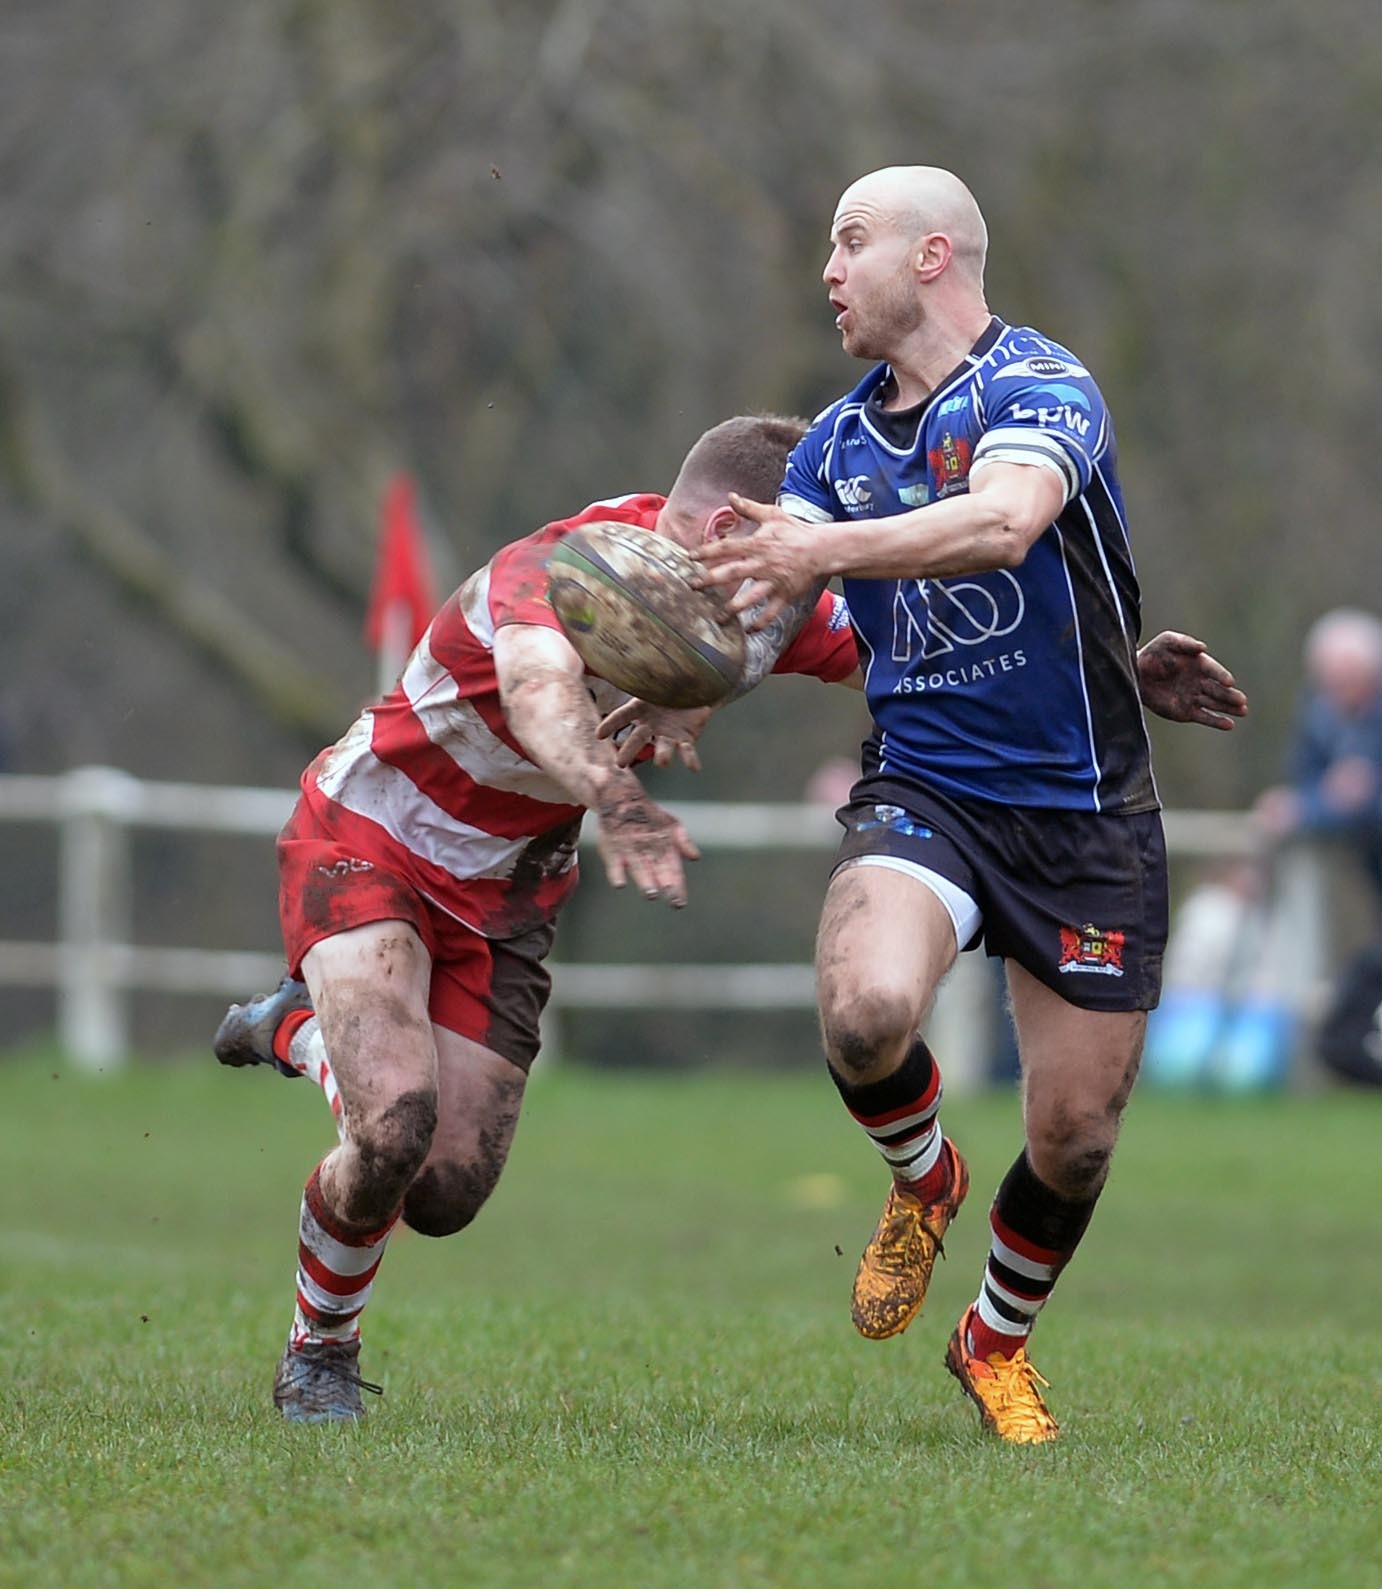 Martin Luckwell was among the Pontypool try scorers against Cwmbran. File picture: christinsleyphotography.co.uk